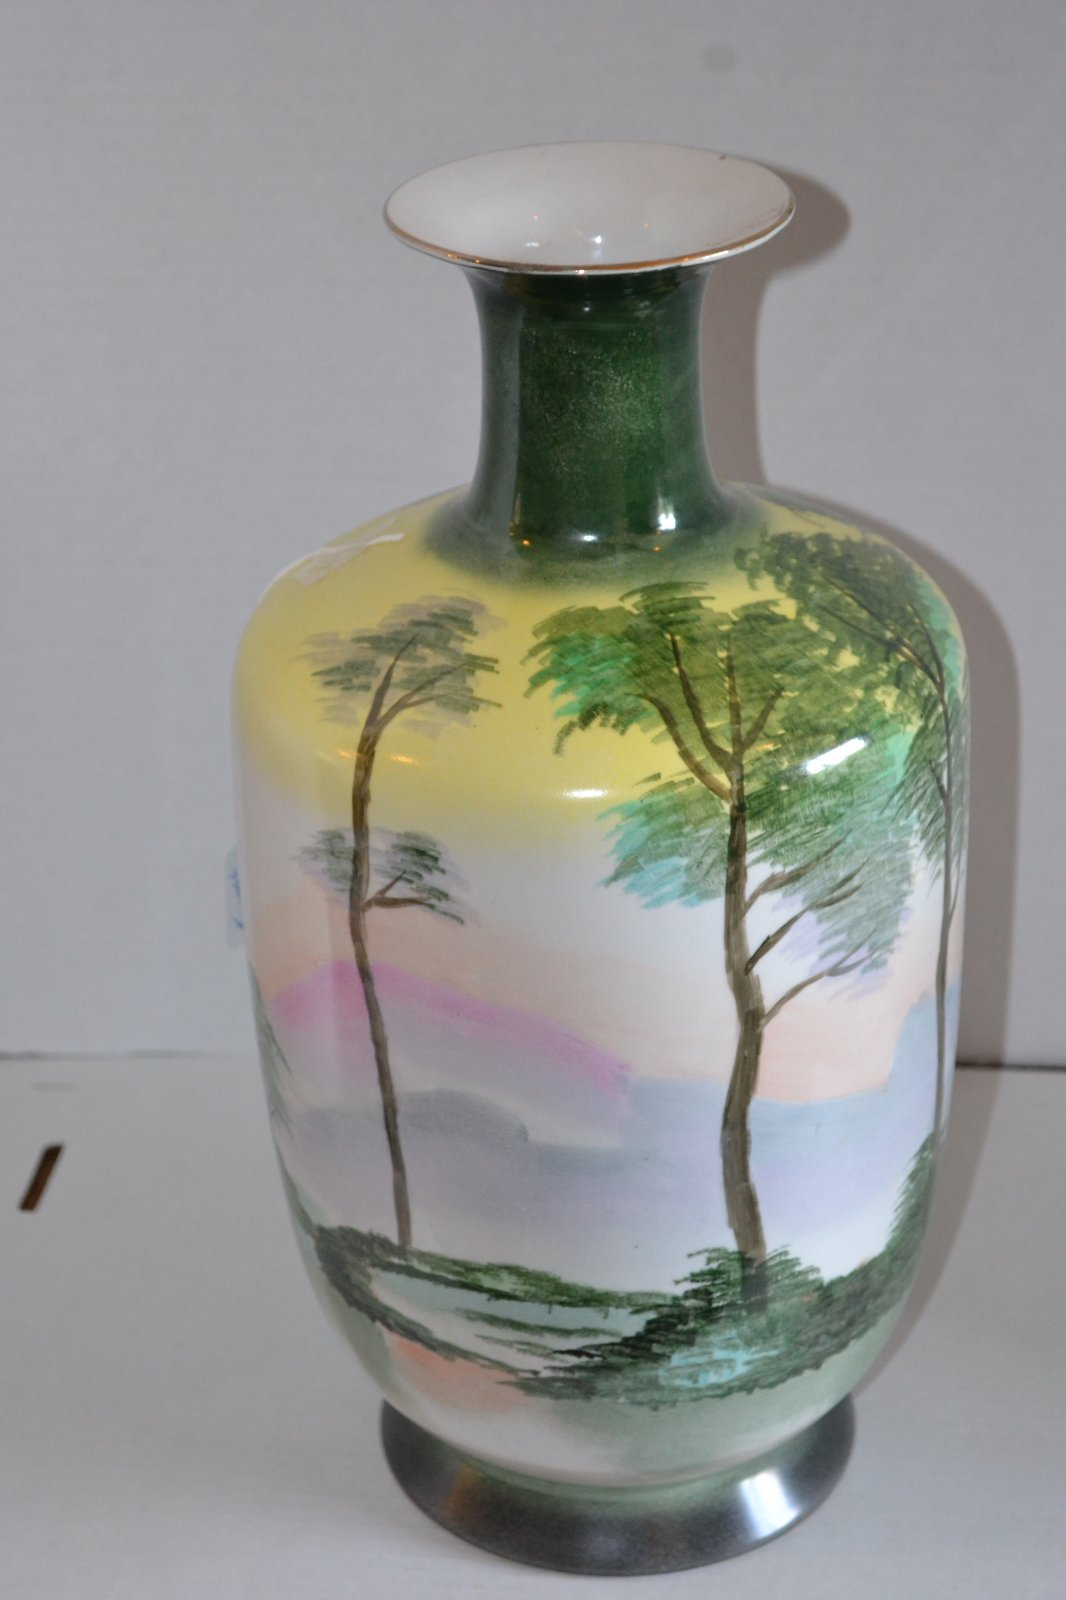 20th Century Handpainted Japanese vase w/ landscape of trees mountains and a lake. H. 16 X W. 9